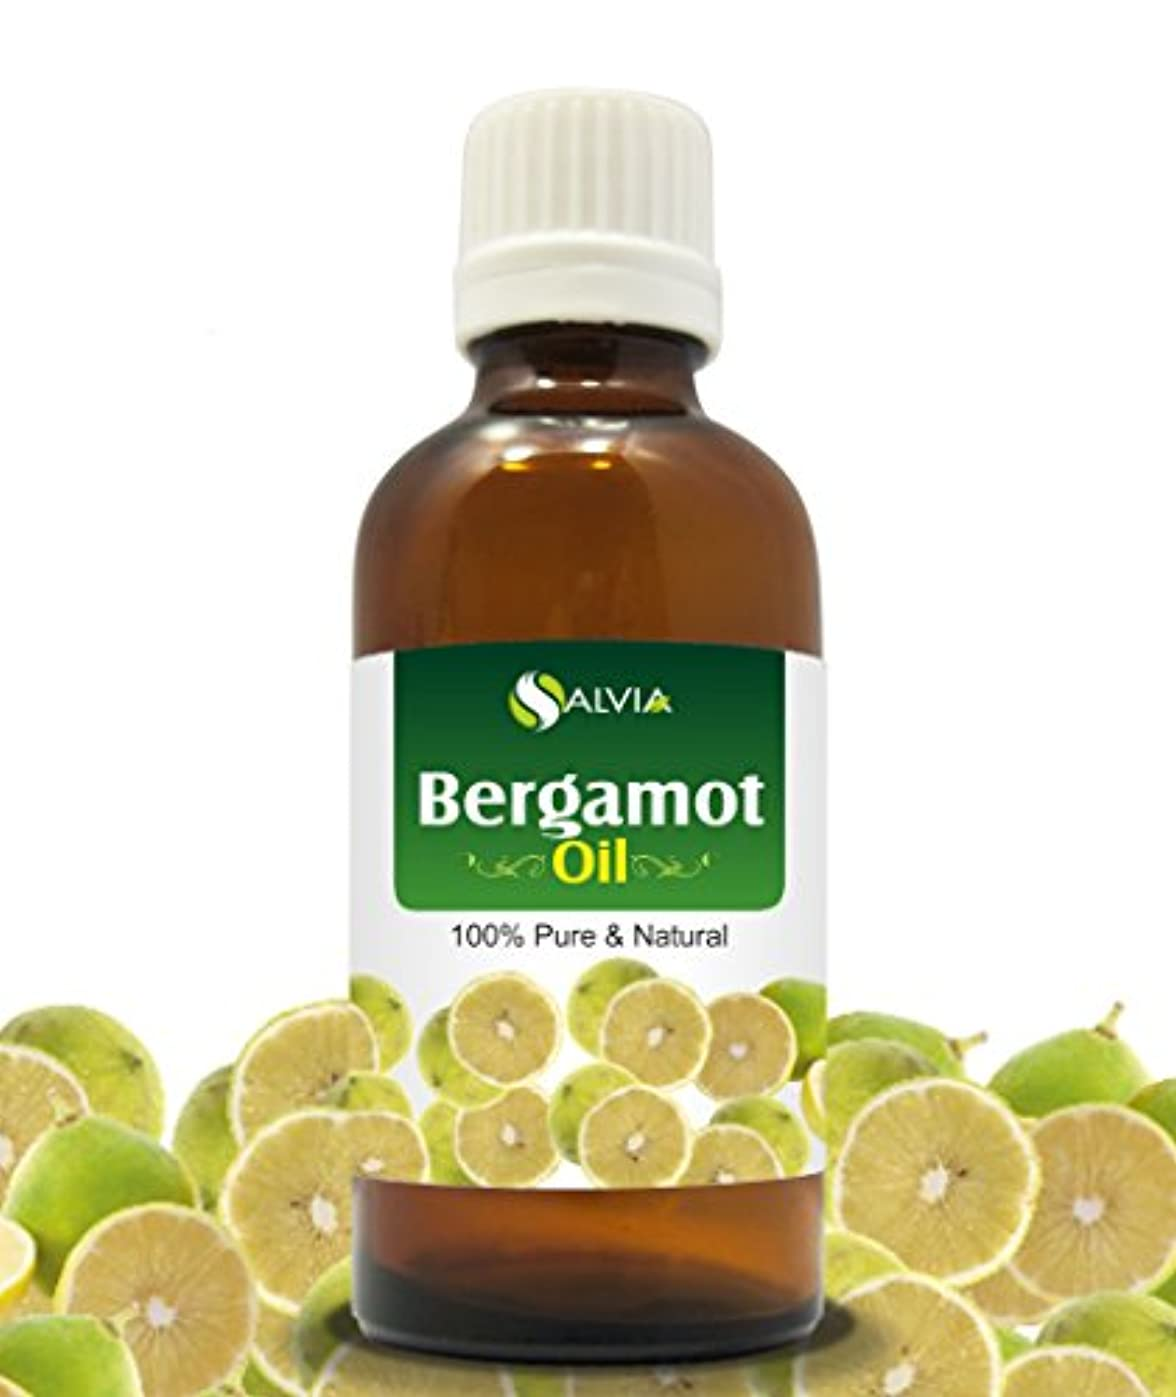 検査グラス不完全BERGAMOT OIL 100% NATURAL PURE UNDILUTED UNCUT ESSENTIAL OIL 100ML